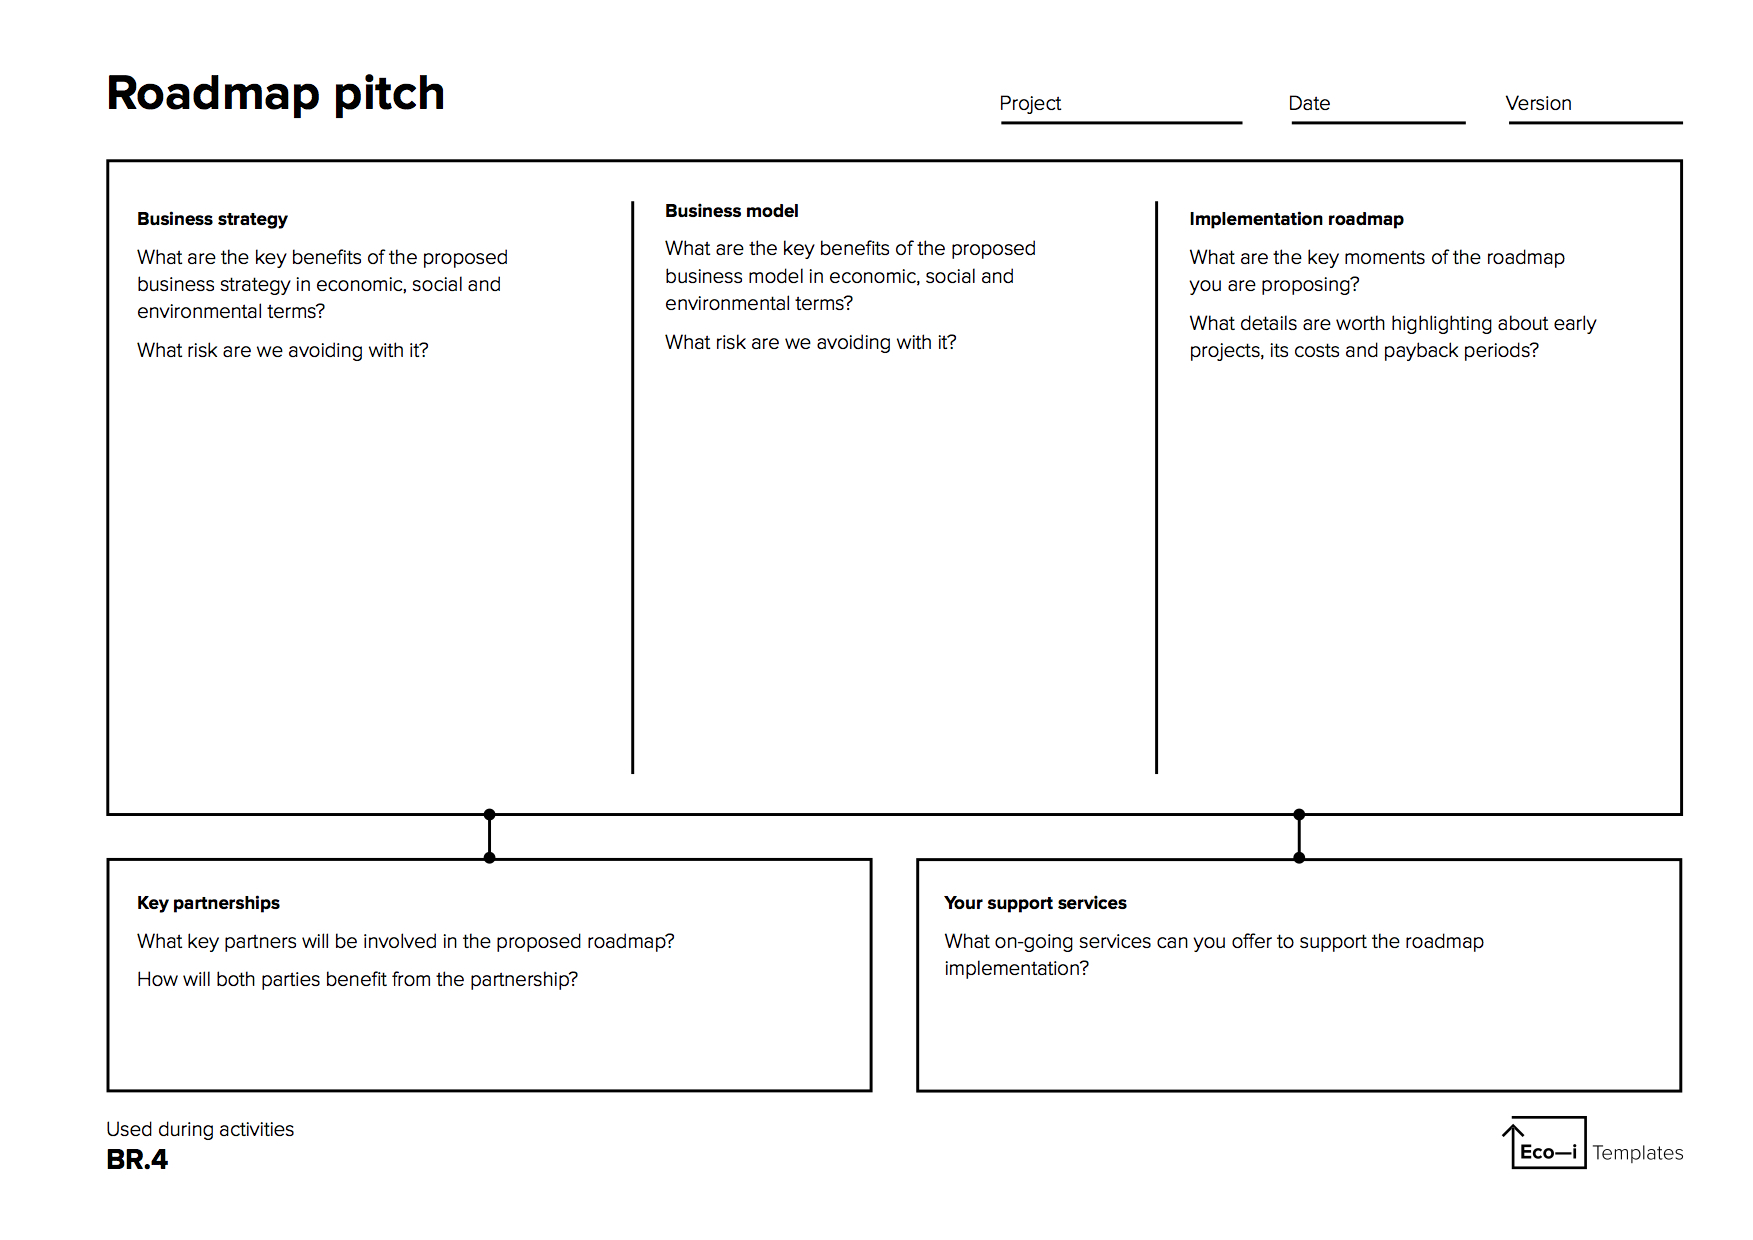 Pitch The Implementation Roadmap To The Ceo